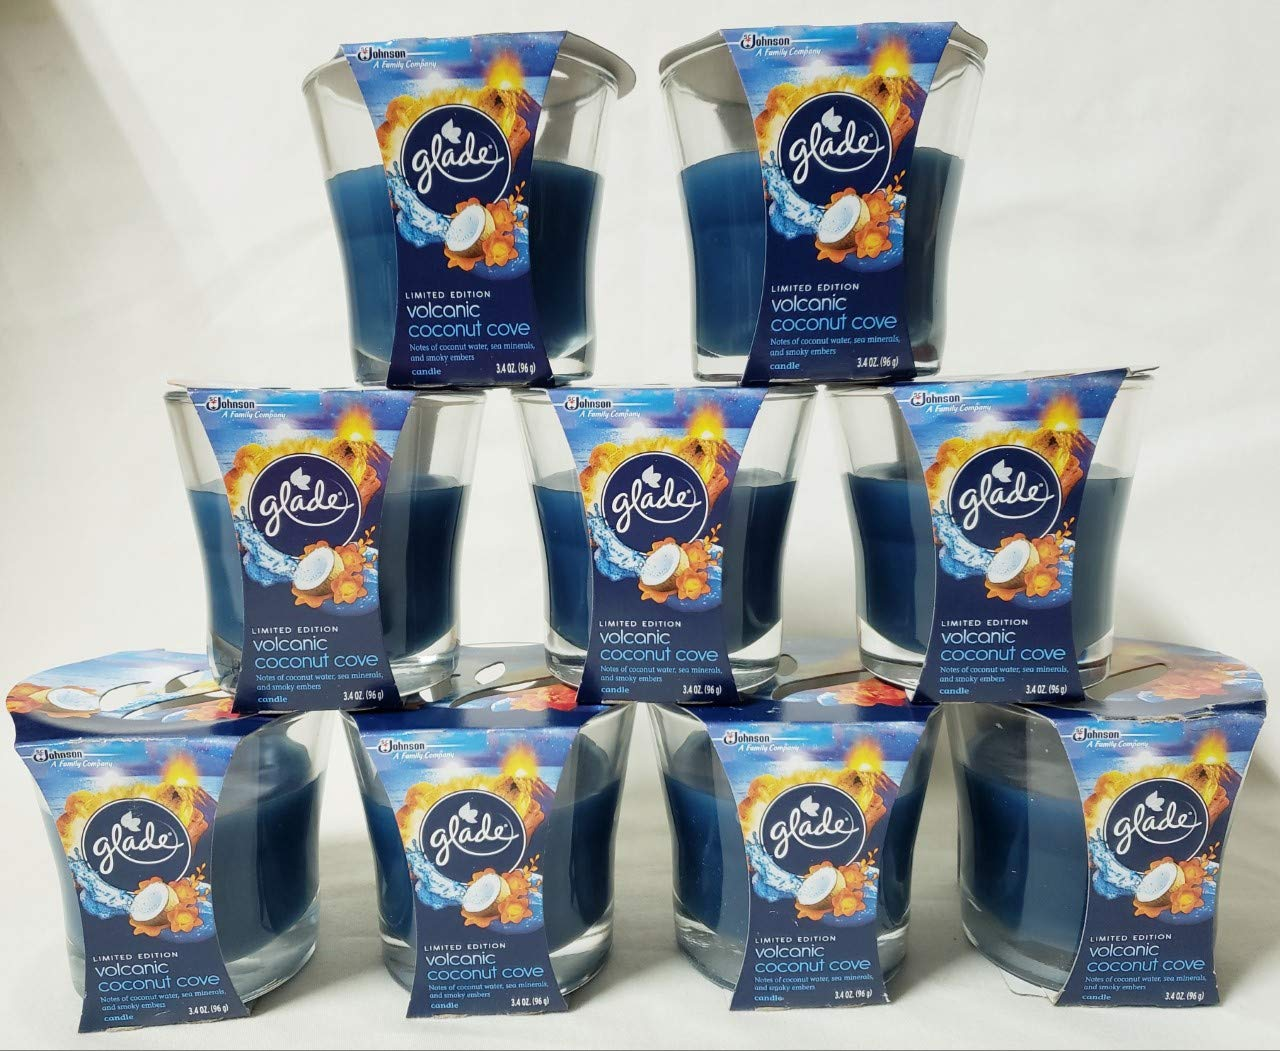 9 GLADE VOLCANIC COCONUT COVE SINGLE WICK CANDLES 3.4 OZ EACH NEW AIR FRESHNER